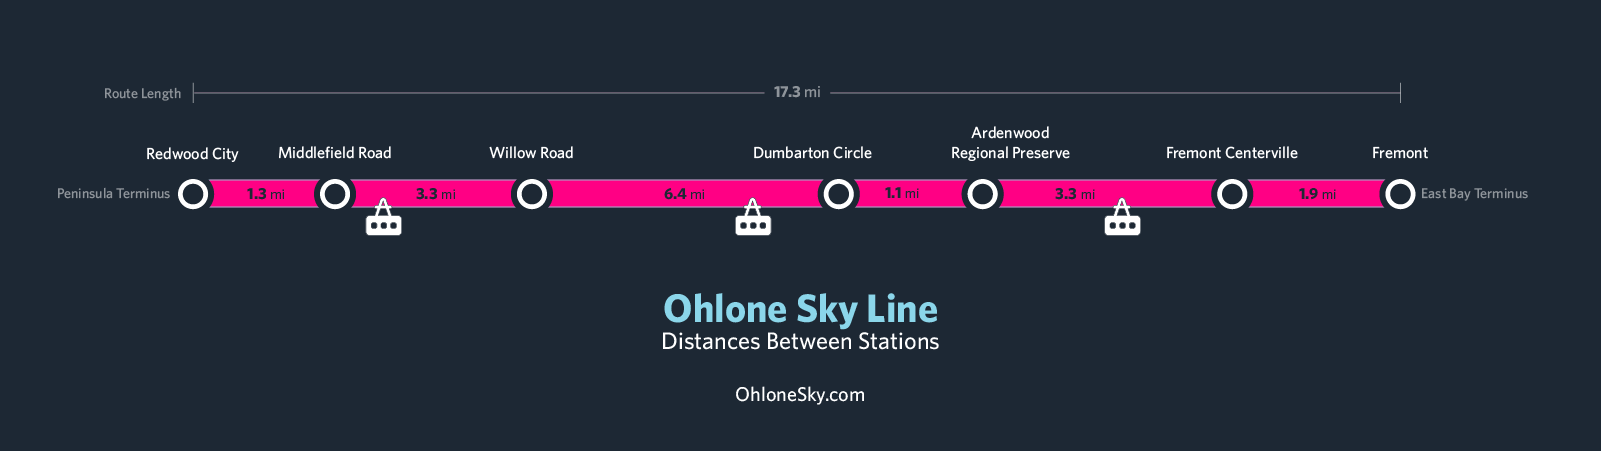 Ohlone Sky Distance graphic